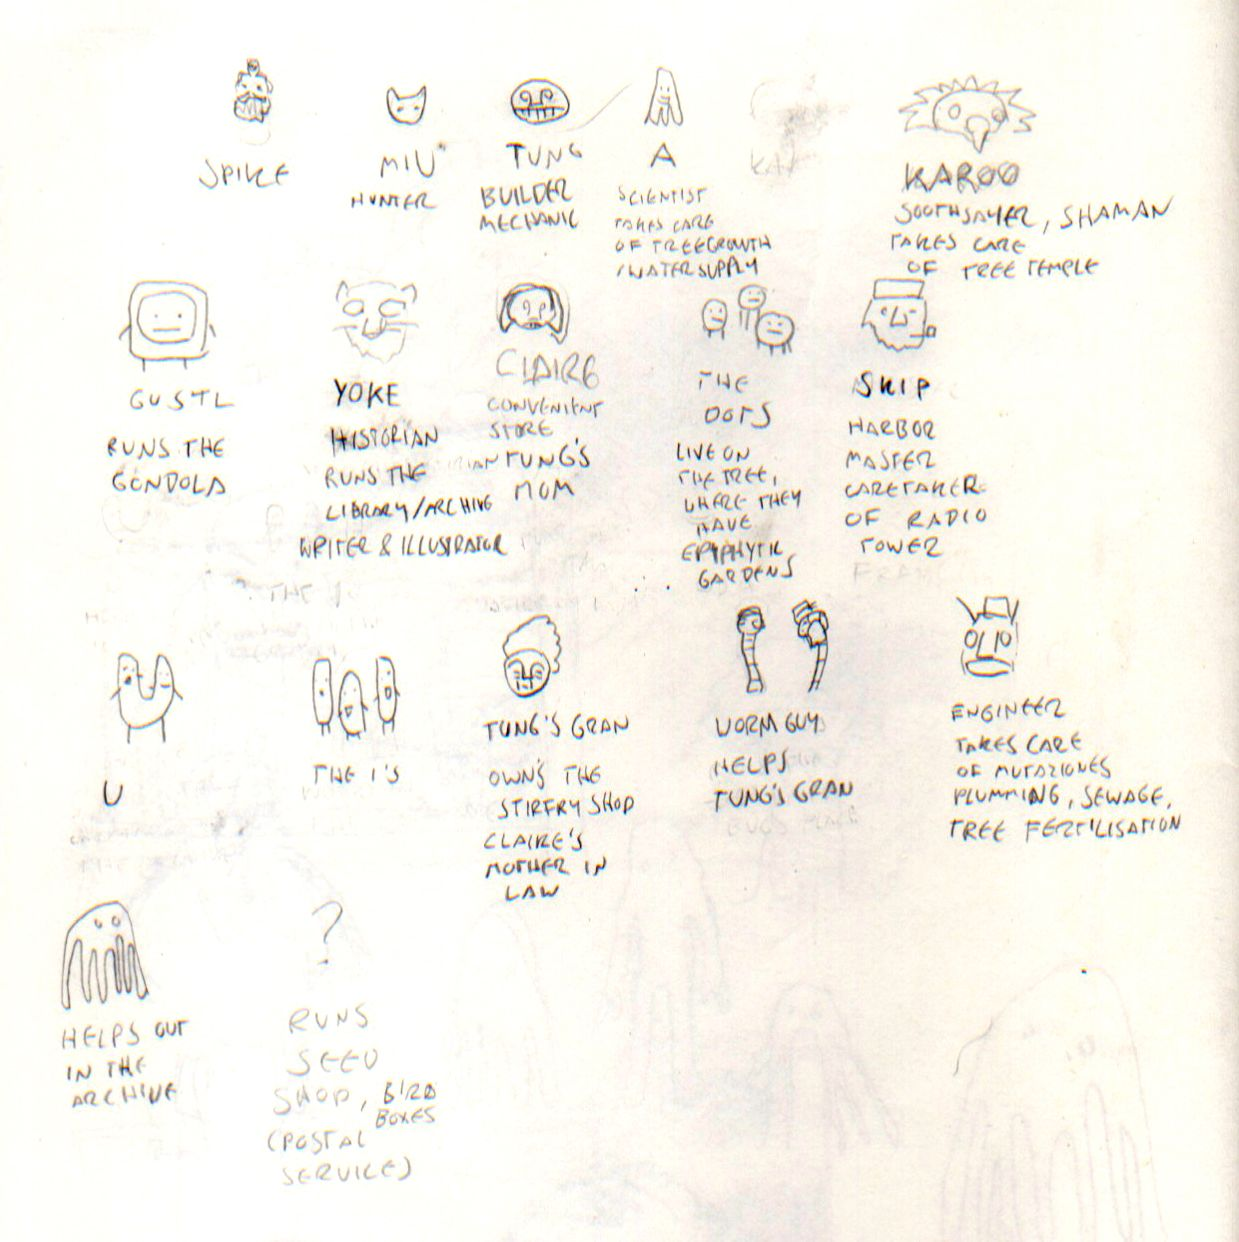 An overview sketch of characters from 2013, describing their function and relation.